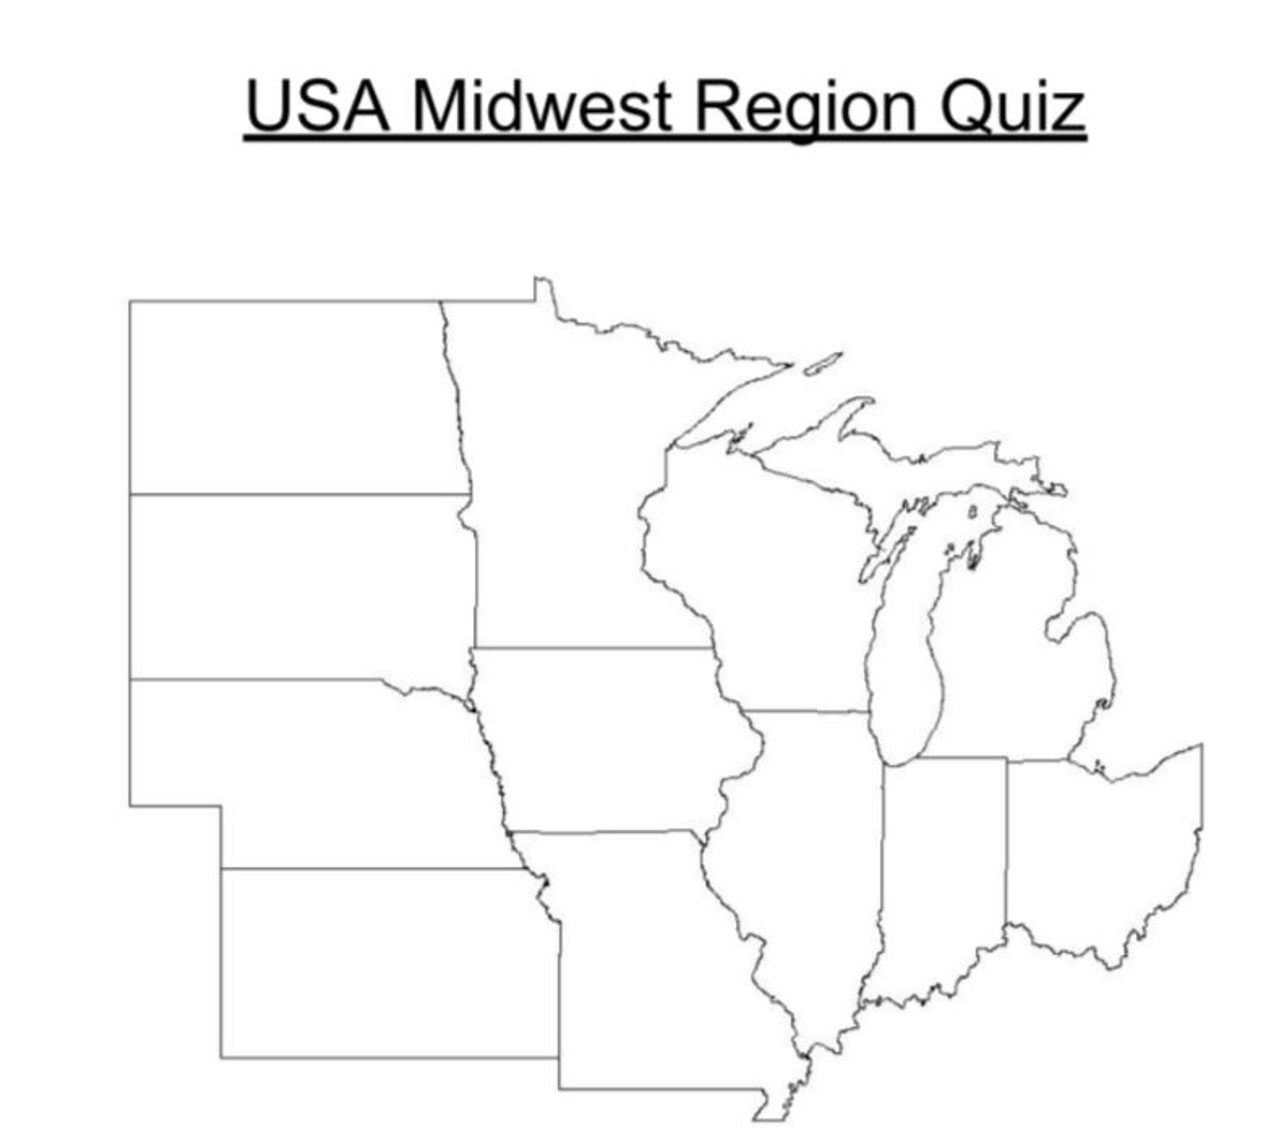 medium resolution of USA Midwest Region Quiz - Amped Up Learning